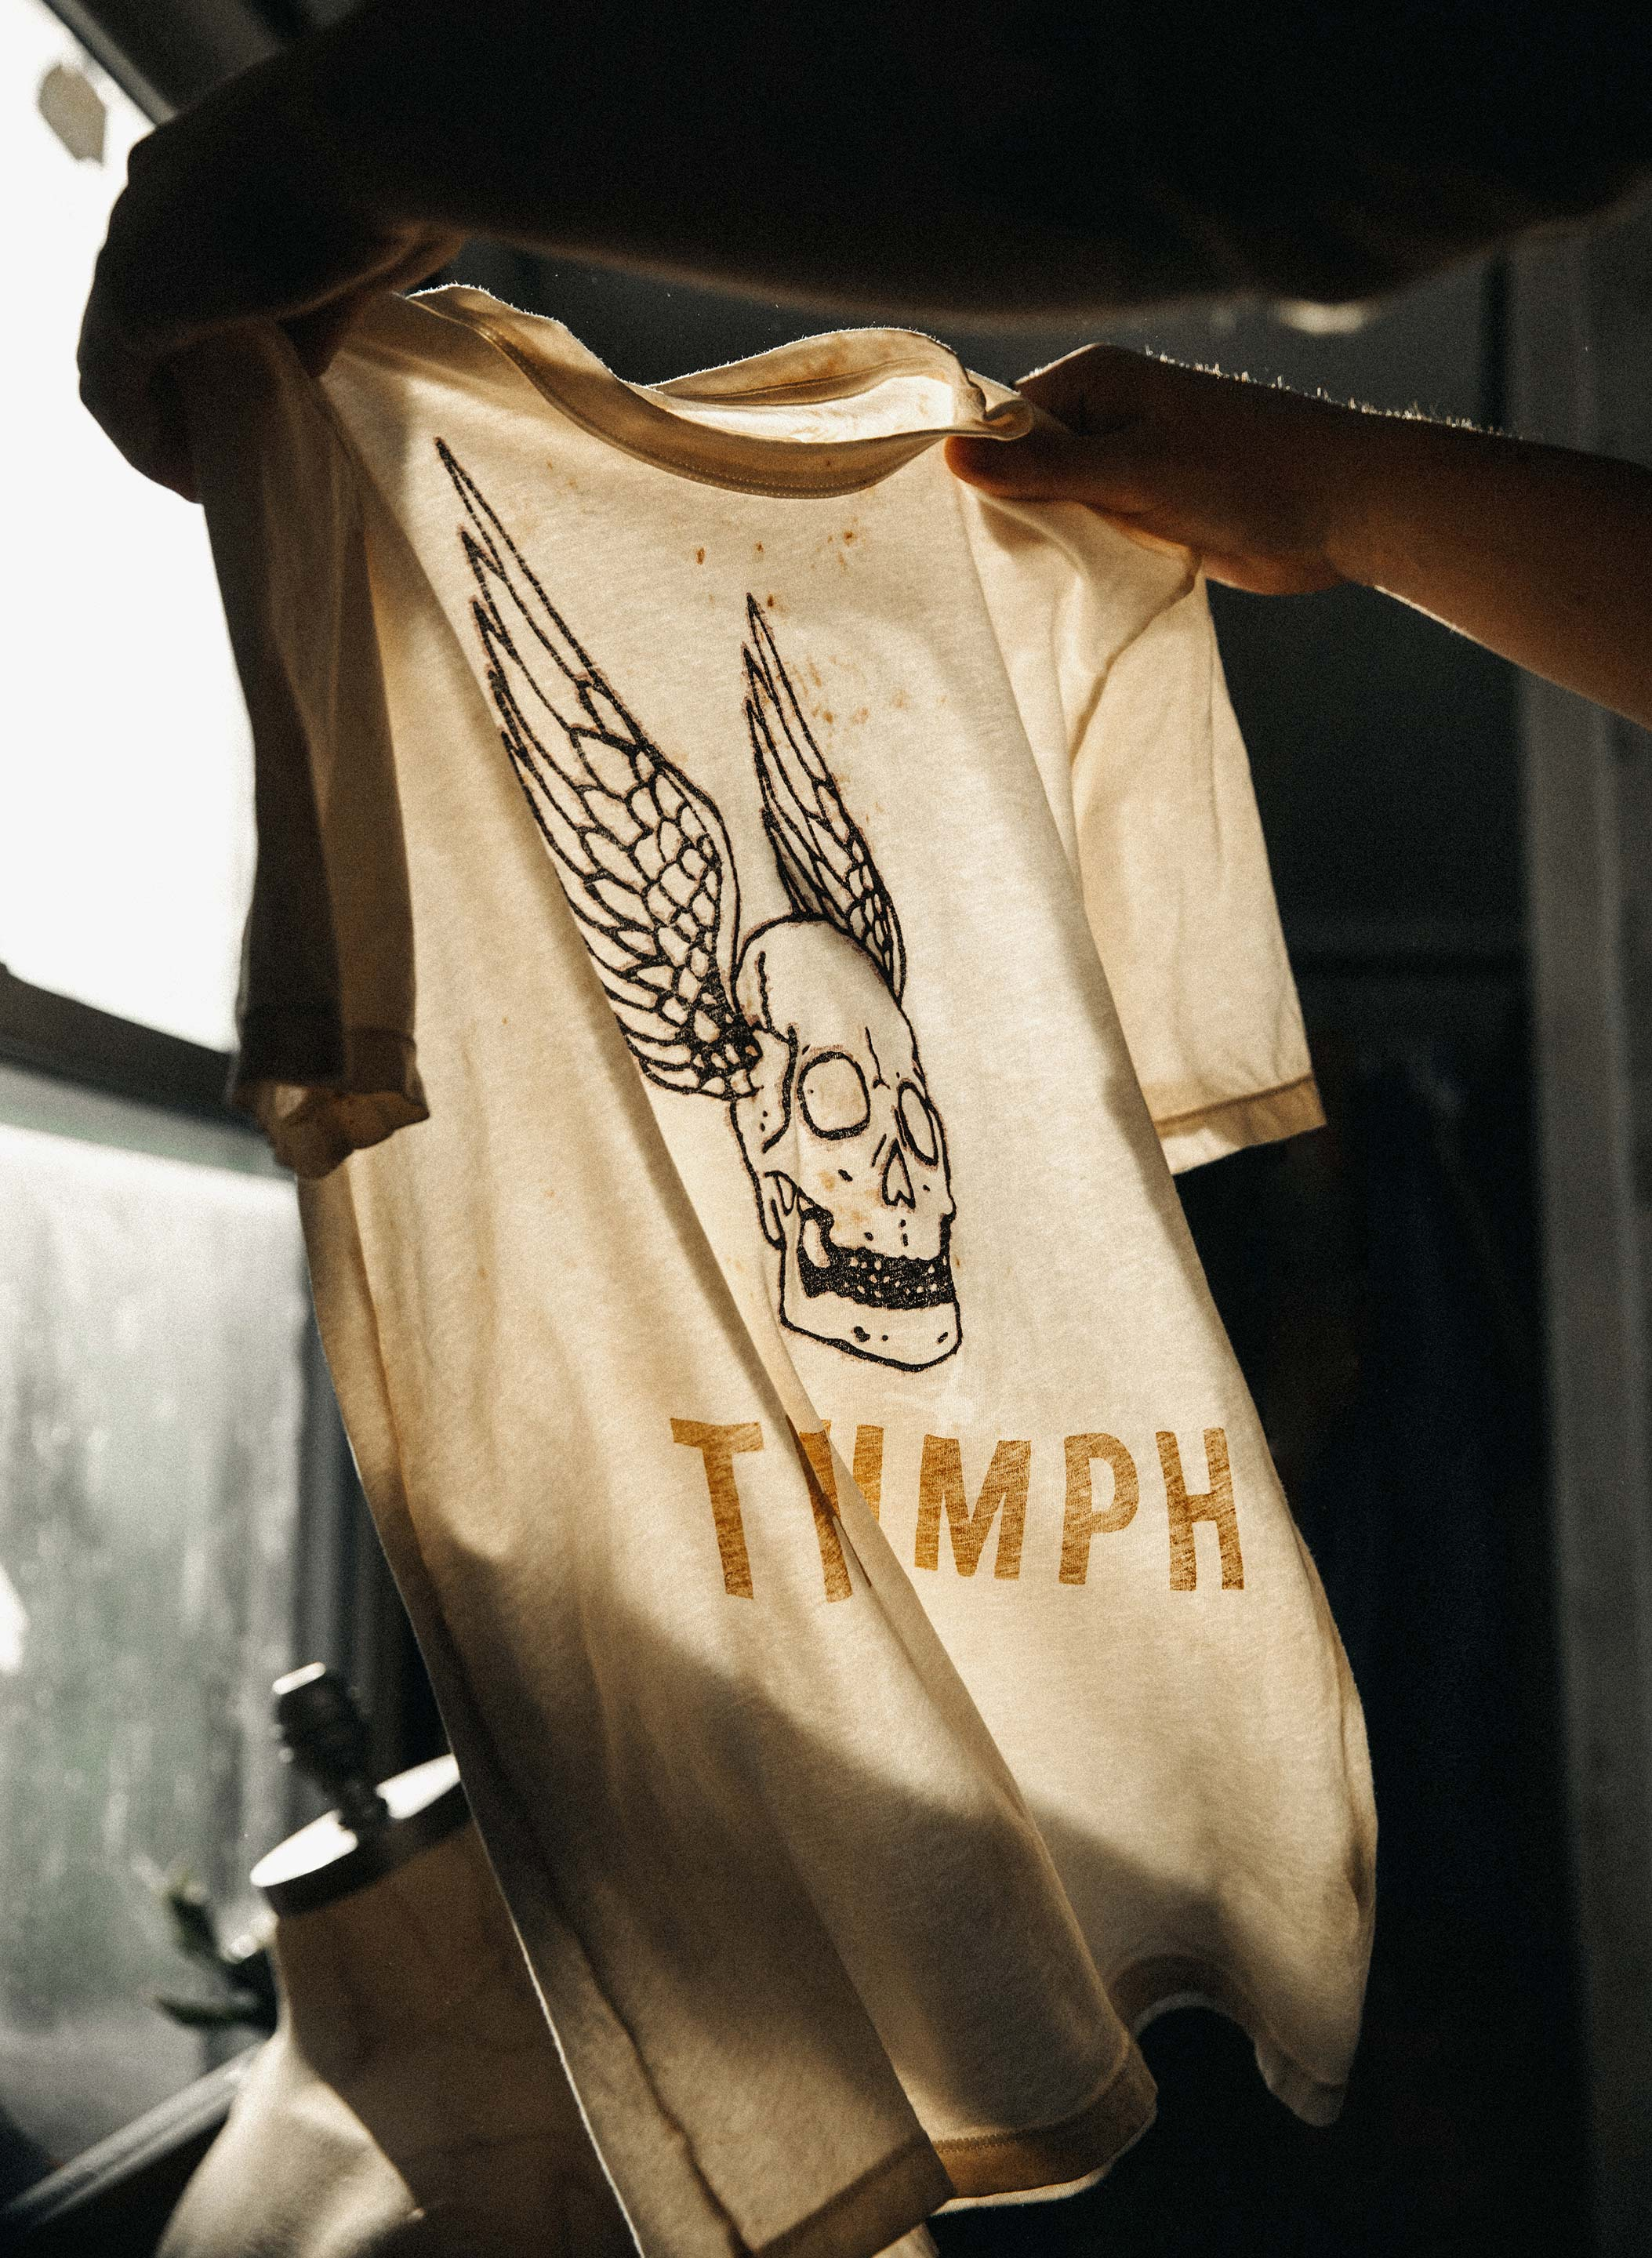 imogene + willie - the triumph tee